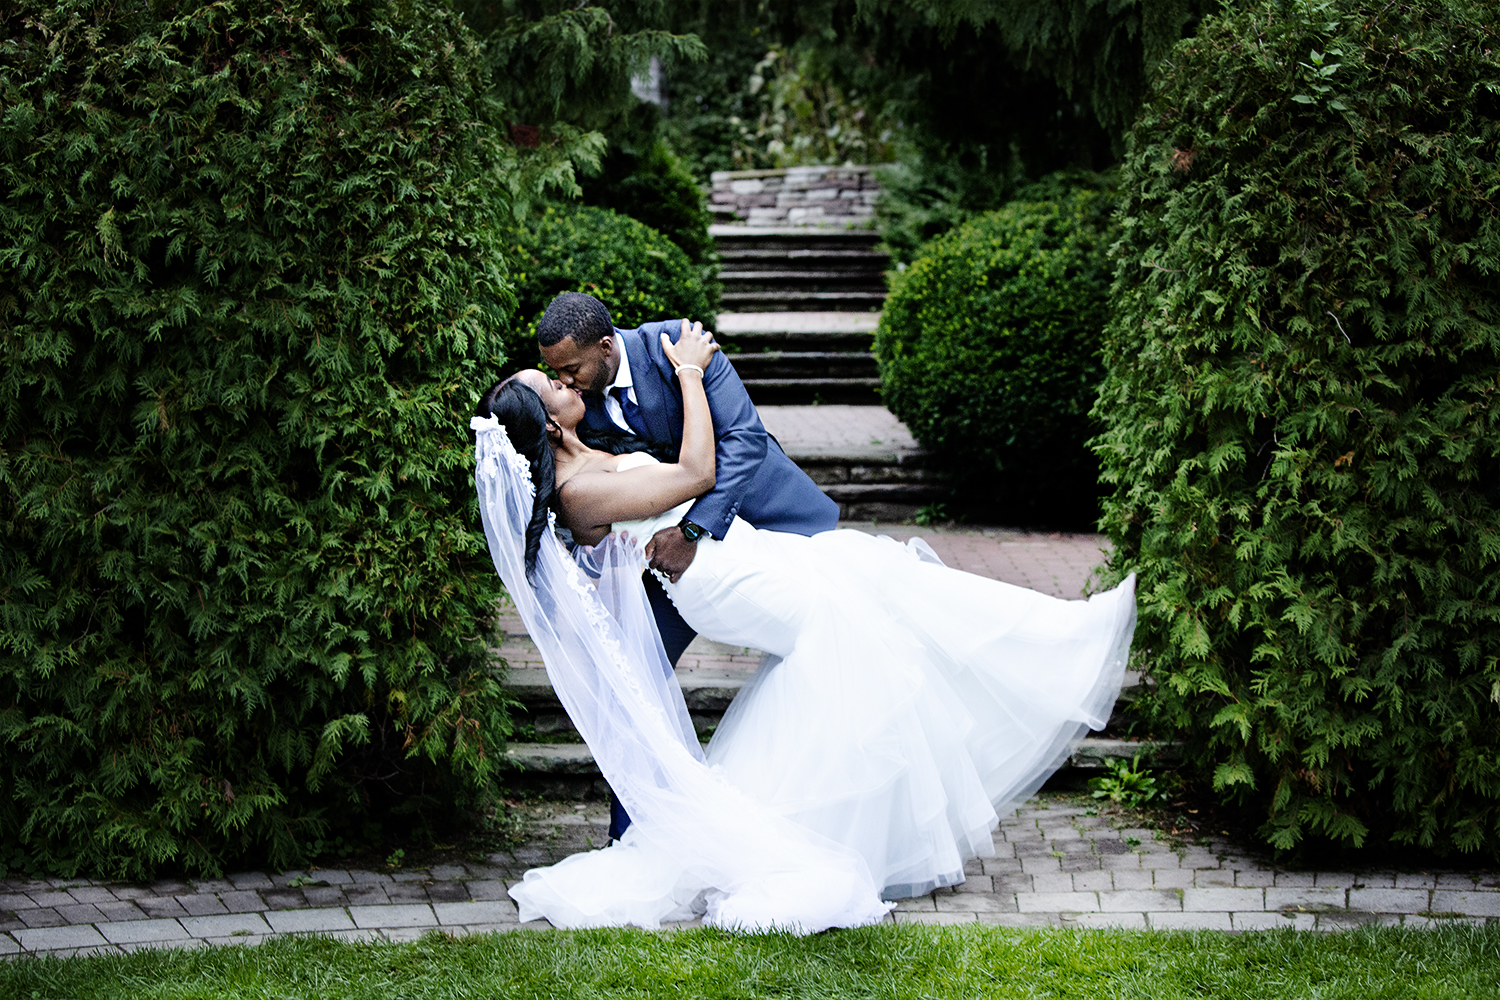 The Groom kisses his Bride during Bridal Party photos at Alexander Muir Gardens